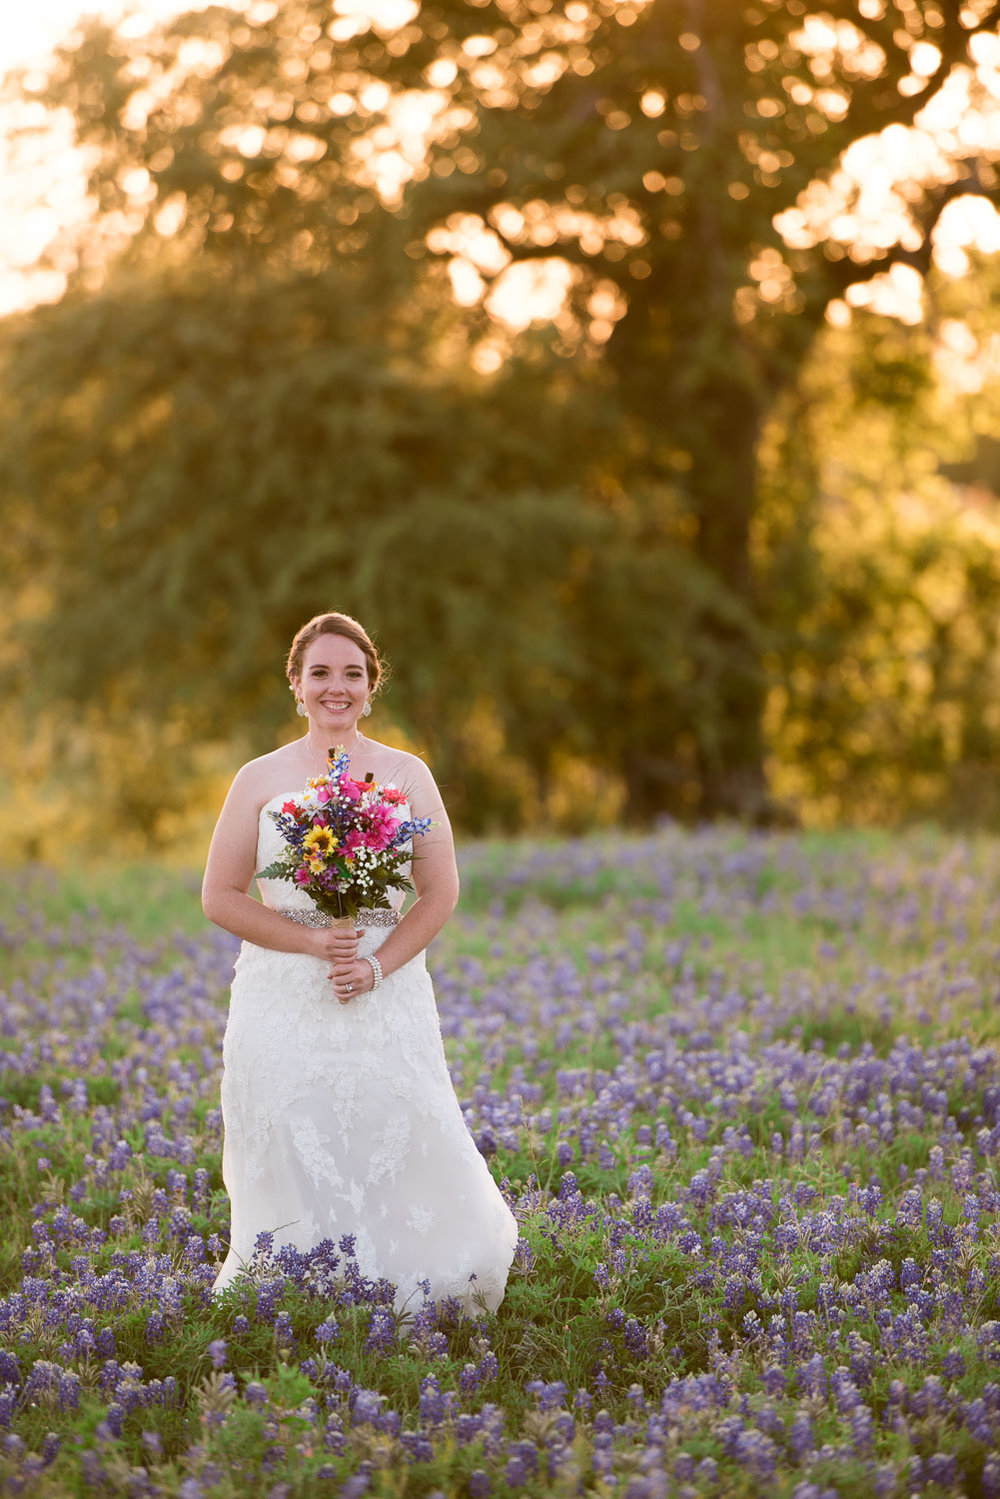 85 photos of bride in a field of bluebonnets.jpg